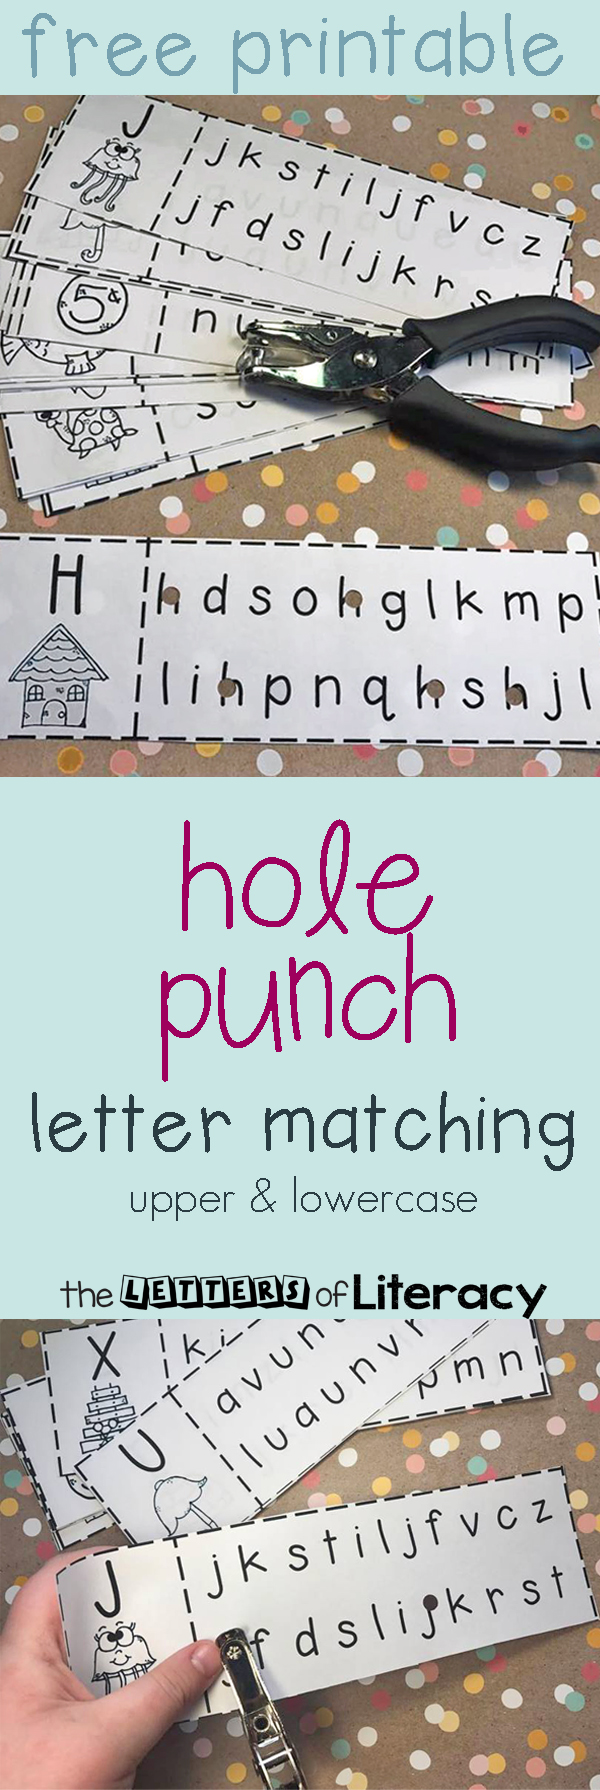 Upper & Lowercase Letter Recognition Matching Hole Punch ...